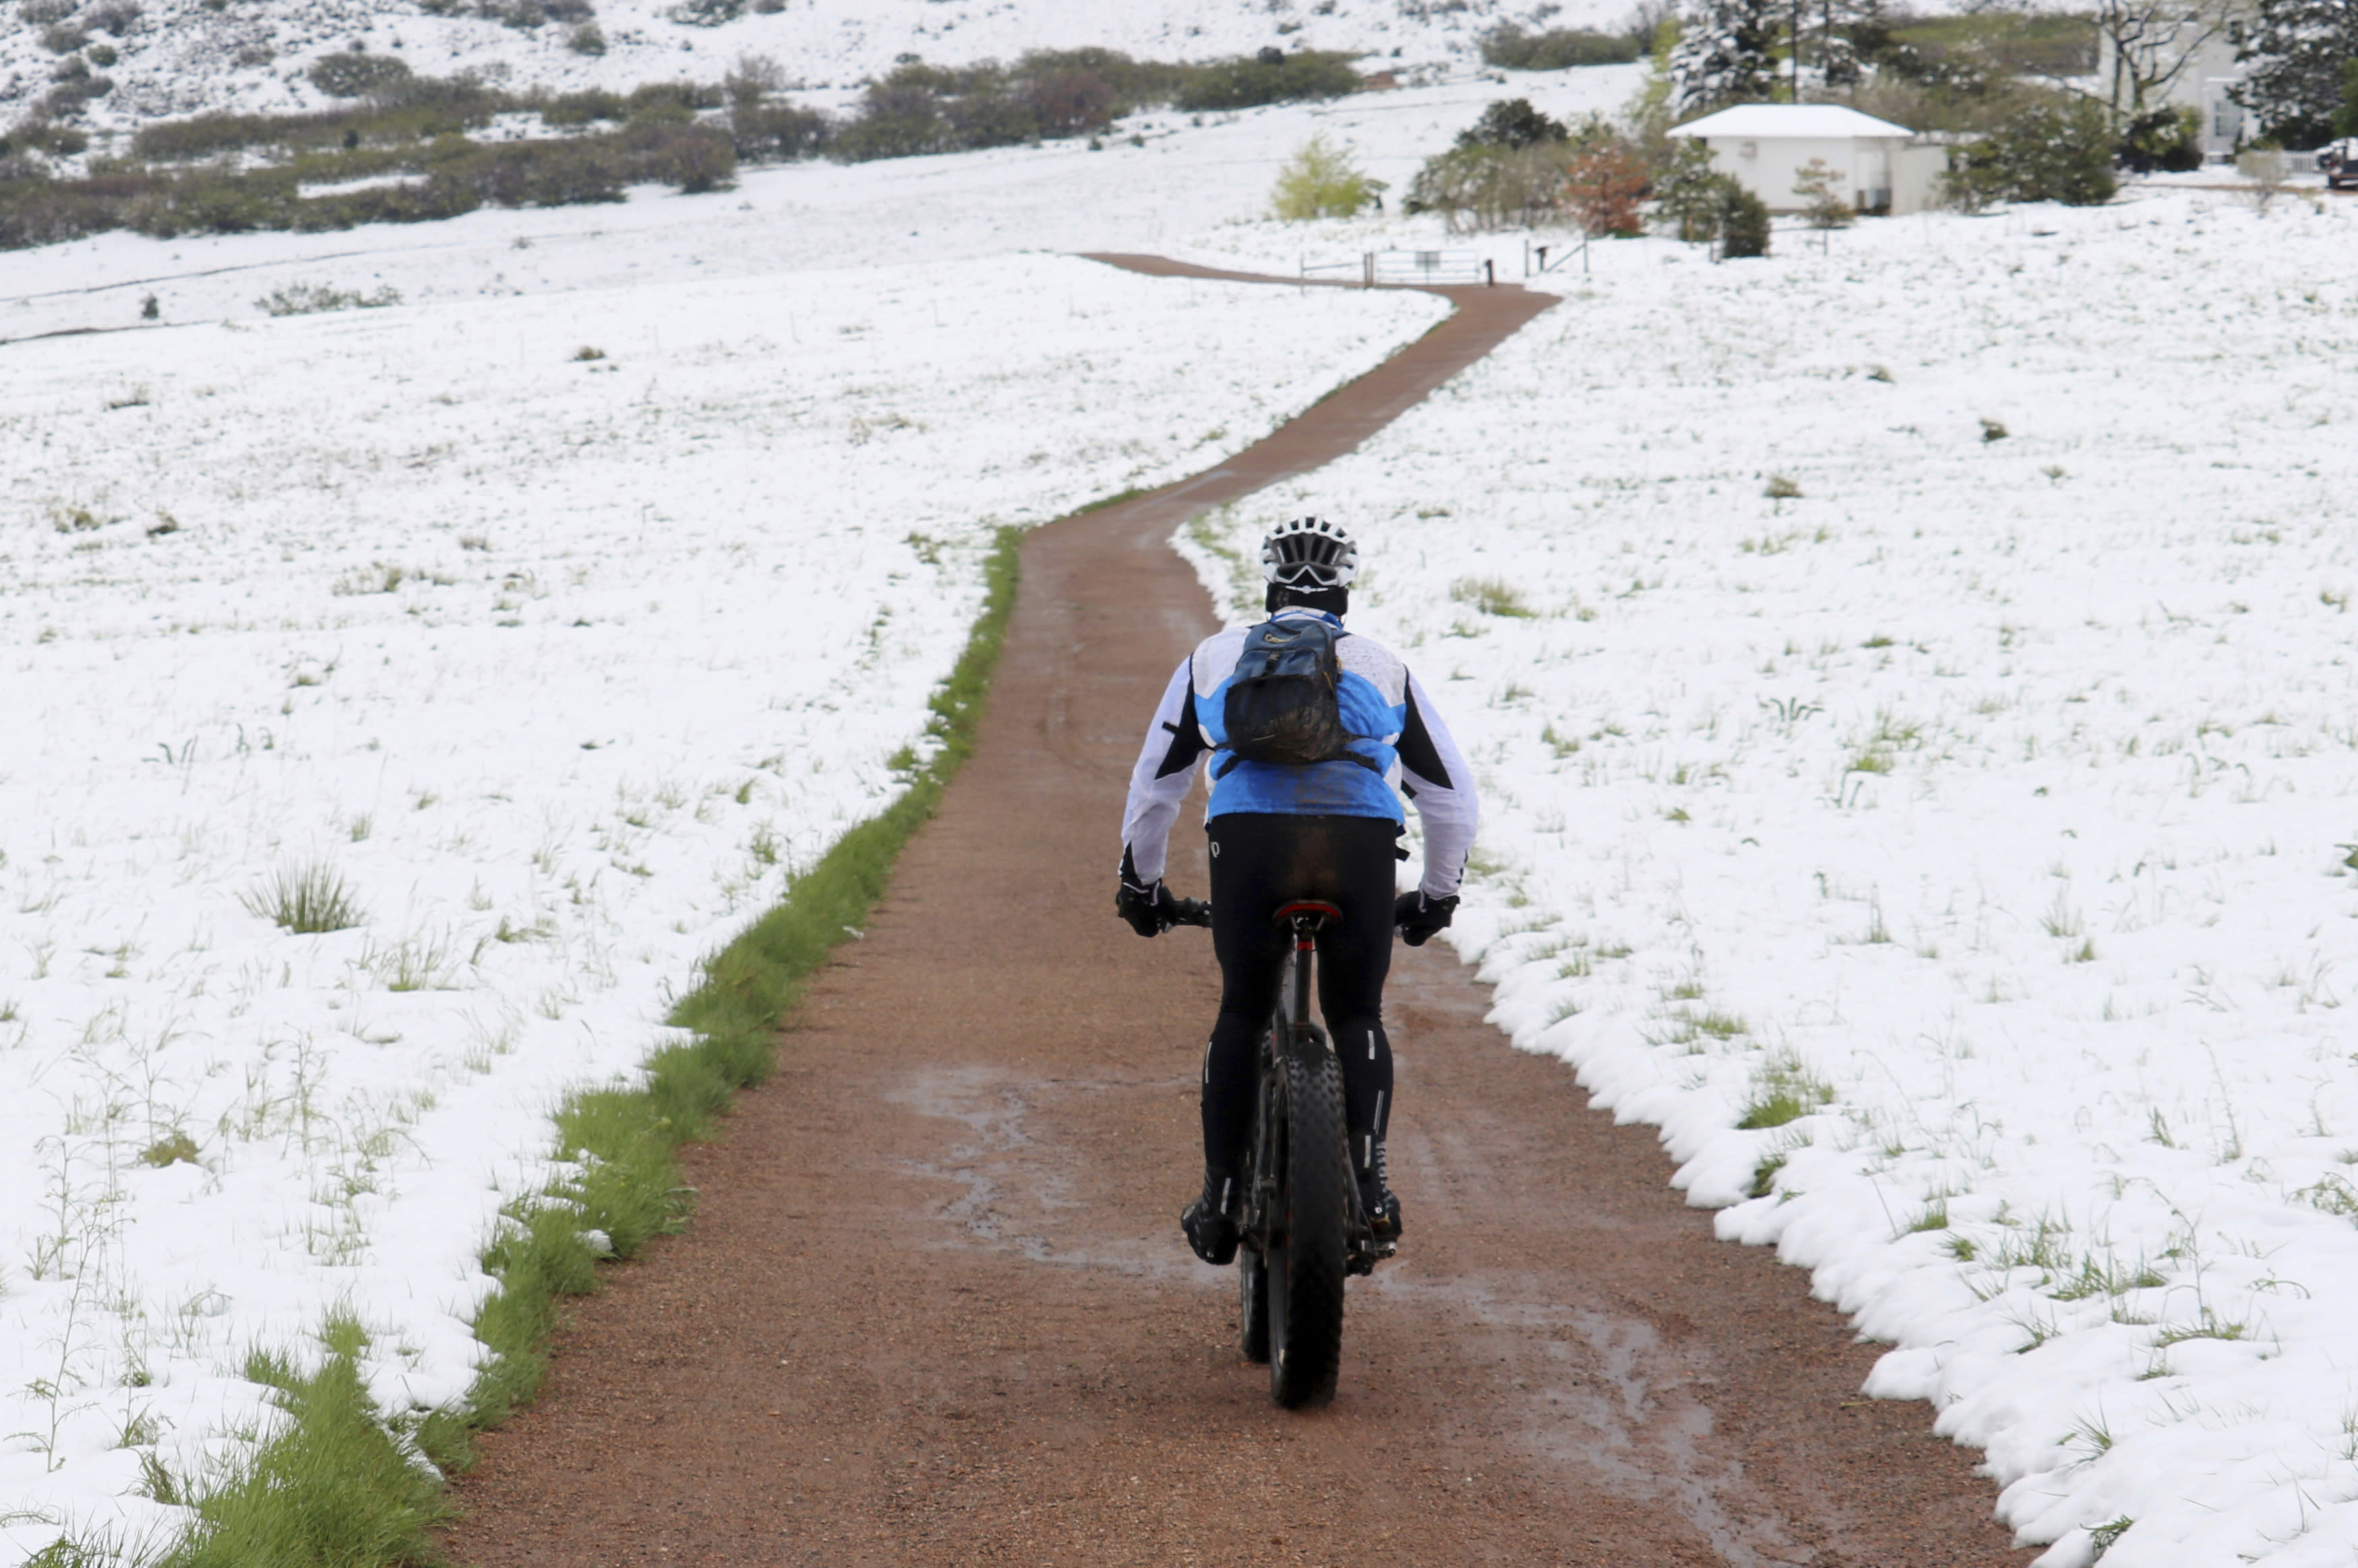 In this photo provided by Adriana Wiersma, a bicyclist rides a trail in the snow-covered Ken Caryl Valley near Littleton, Colo., after a late spring storm blanketed the area with snow, seen Tuesday morning, May 21, 2019. Much of the West is experiencing weird weather. Colorado and Wyoming got an unusually late dump of snow this week. In California, growers are frustrated by an unusually wet spring that has delayed the planting of some crops like rice and damaged others including strawberries and wine grapes. (Adriana Wiersma via AP)